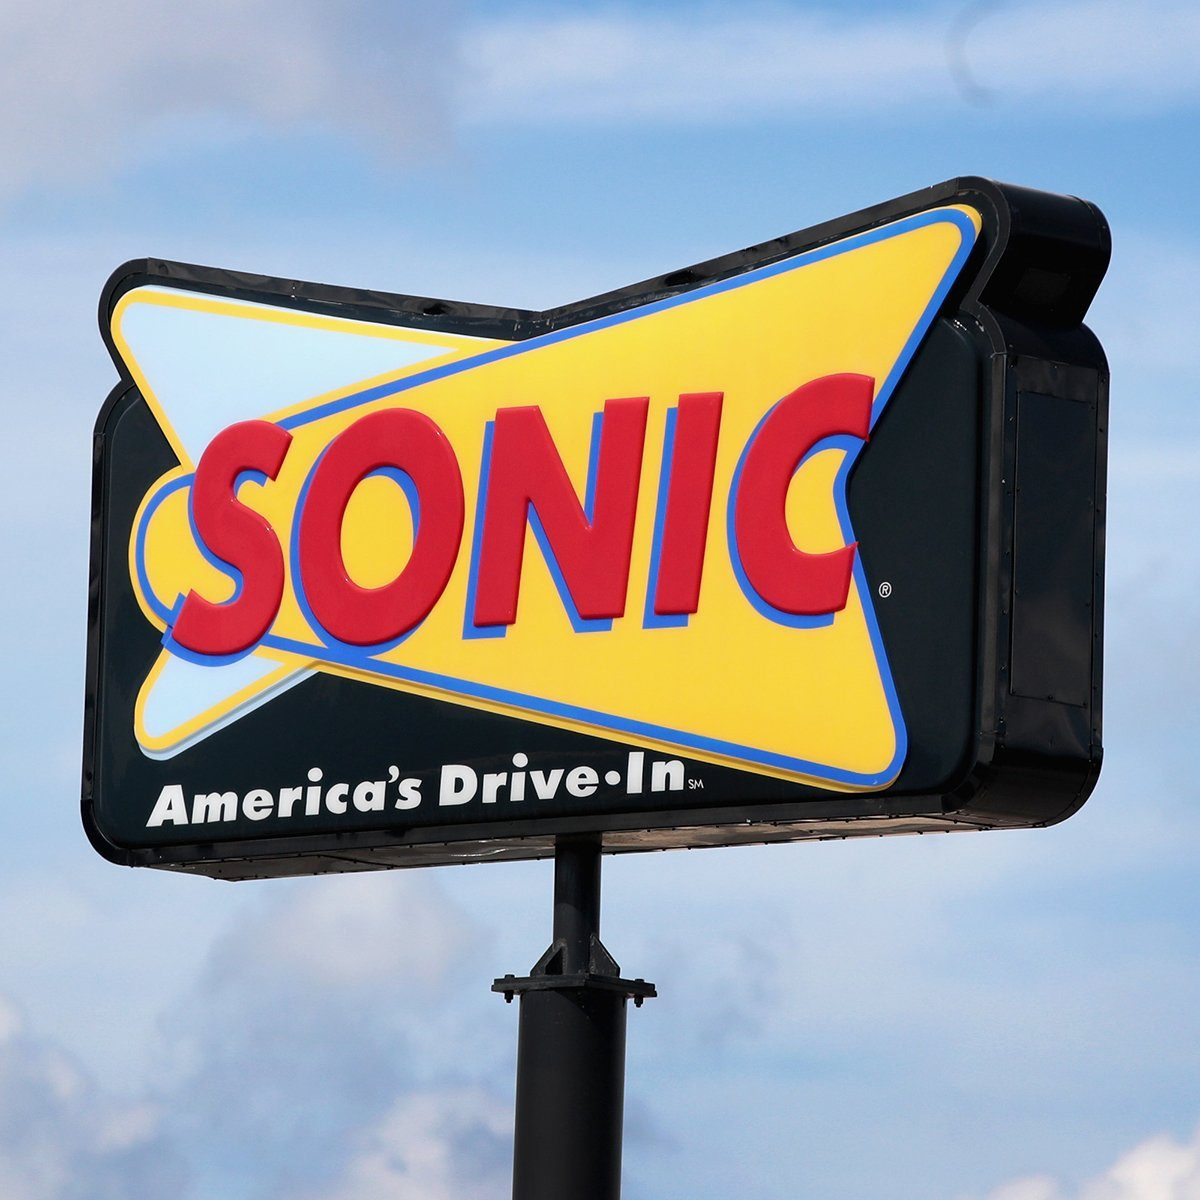 CICERO, IL - SEPTEMBER 25: A sign advertises the location of a Sonic restaurant on September 25, 2018 in Cicero, Illinois. Inspire Brands Inc., the parent company of Arby's and Buffalo Wild Wings, announced today that it was buying Sonic for $2.3 billion. (Photo by Scott Olson/Getty Images)